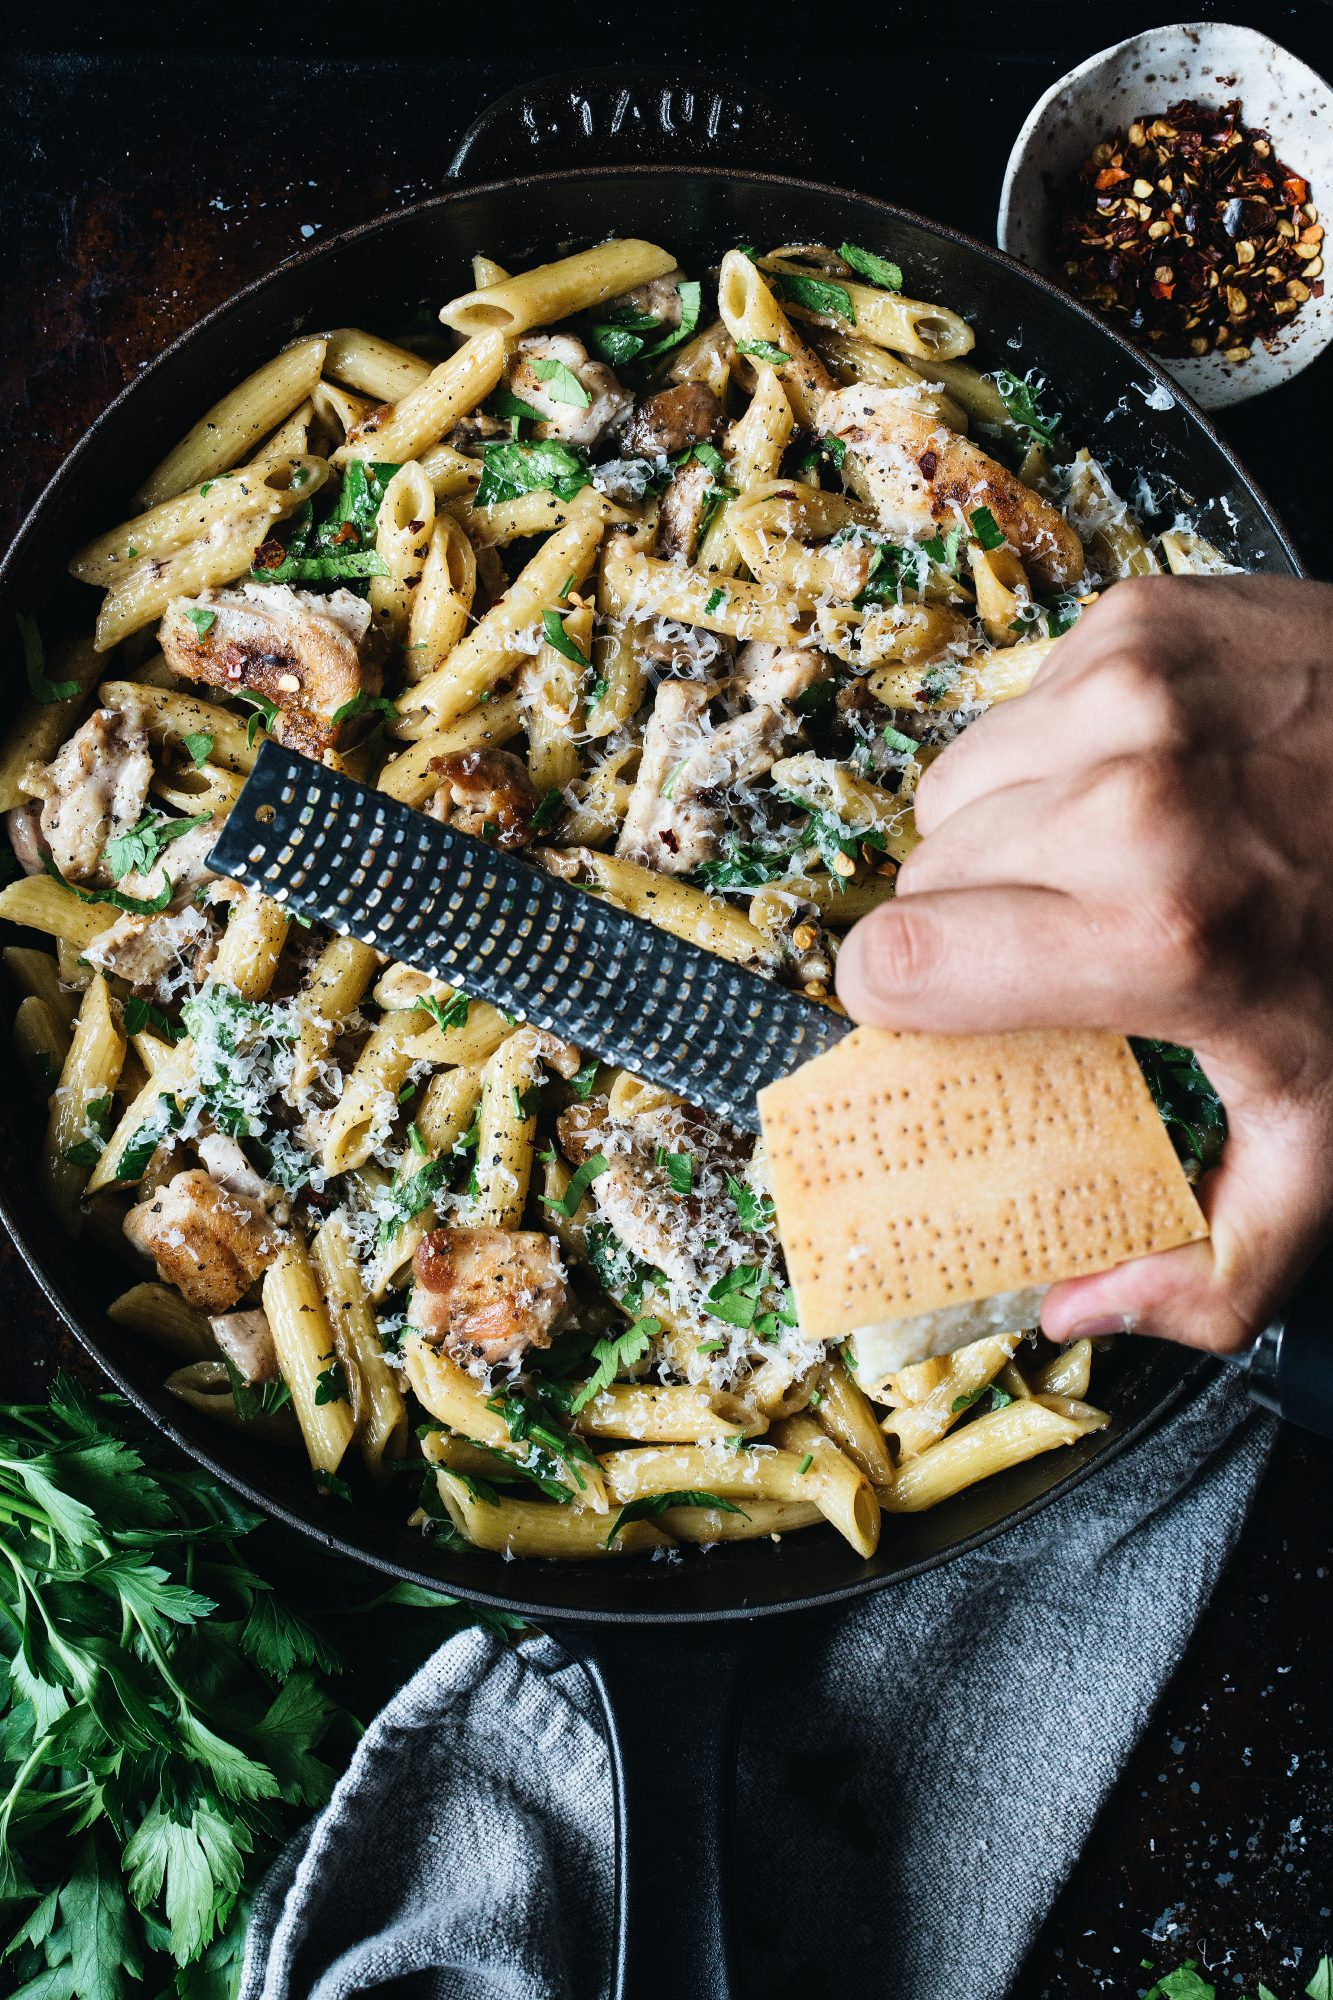 Caramelized Onion, Mushroom and Chicken Penne